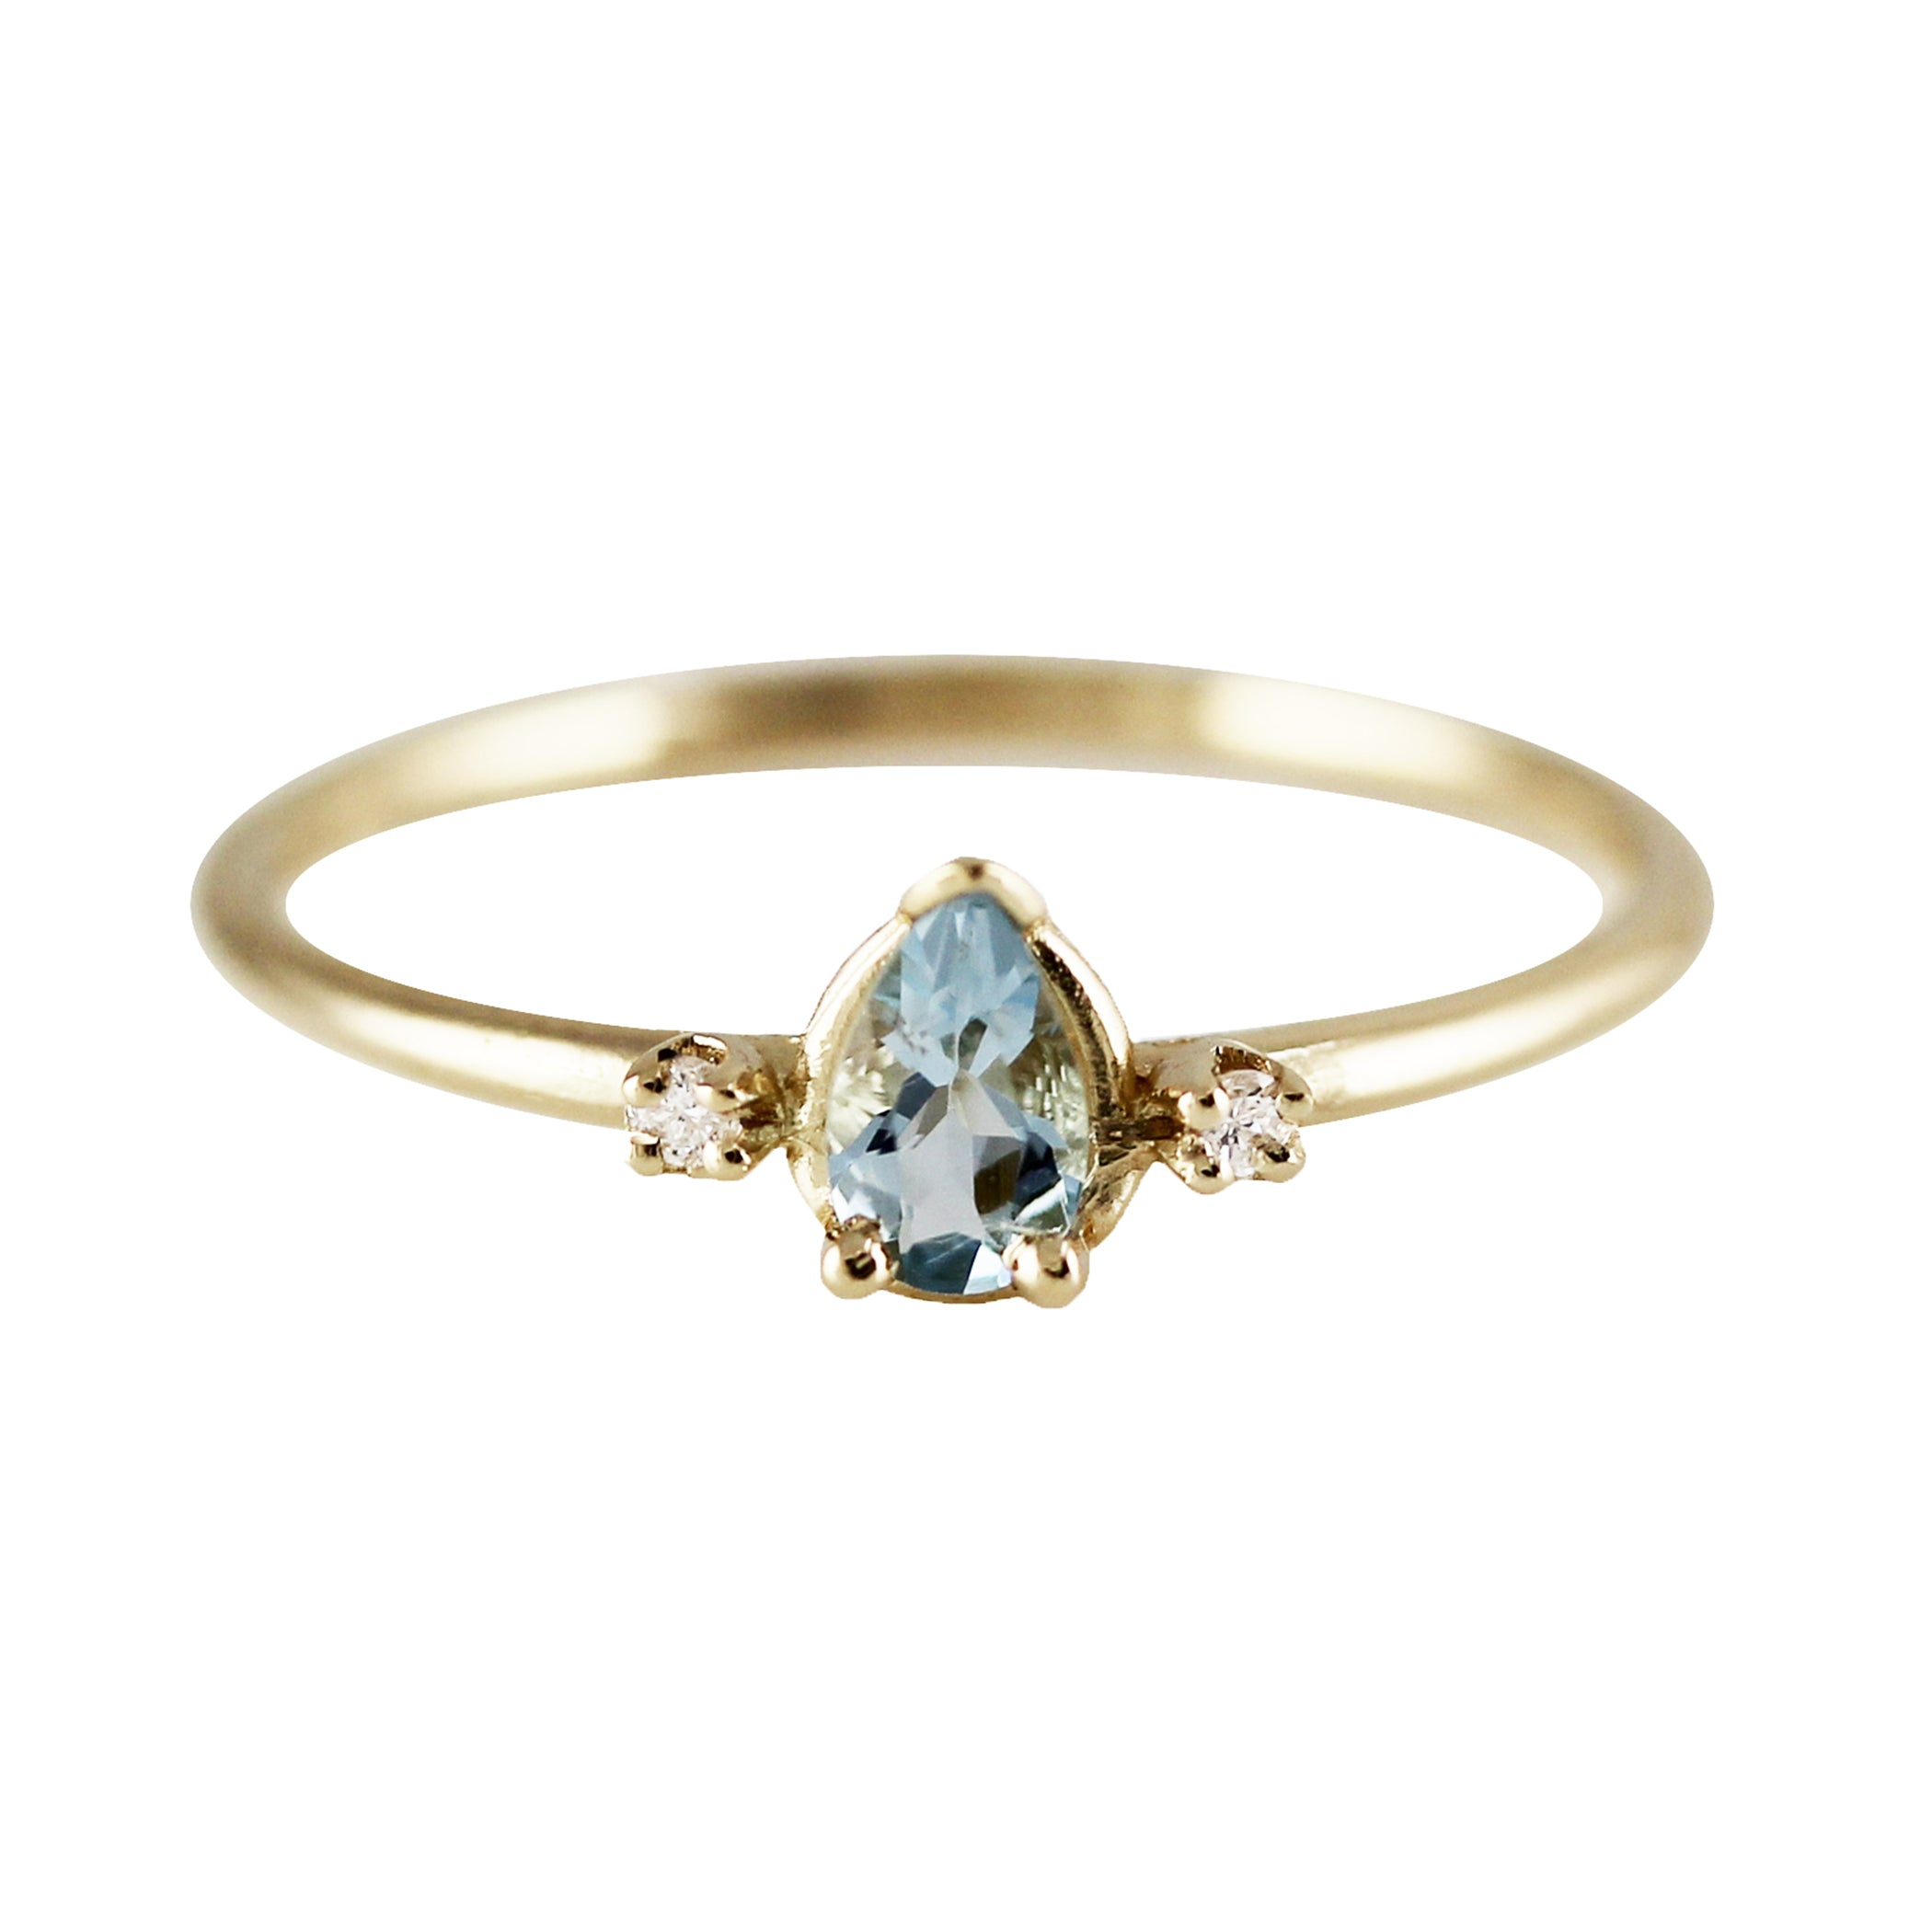 jewellery designers ring horizontal aquamarine jewelery pugliese insp august rosanne shop